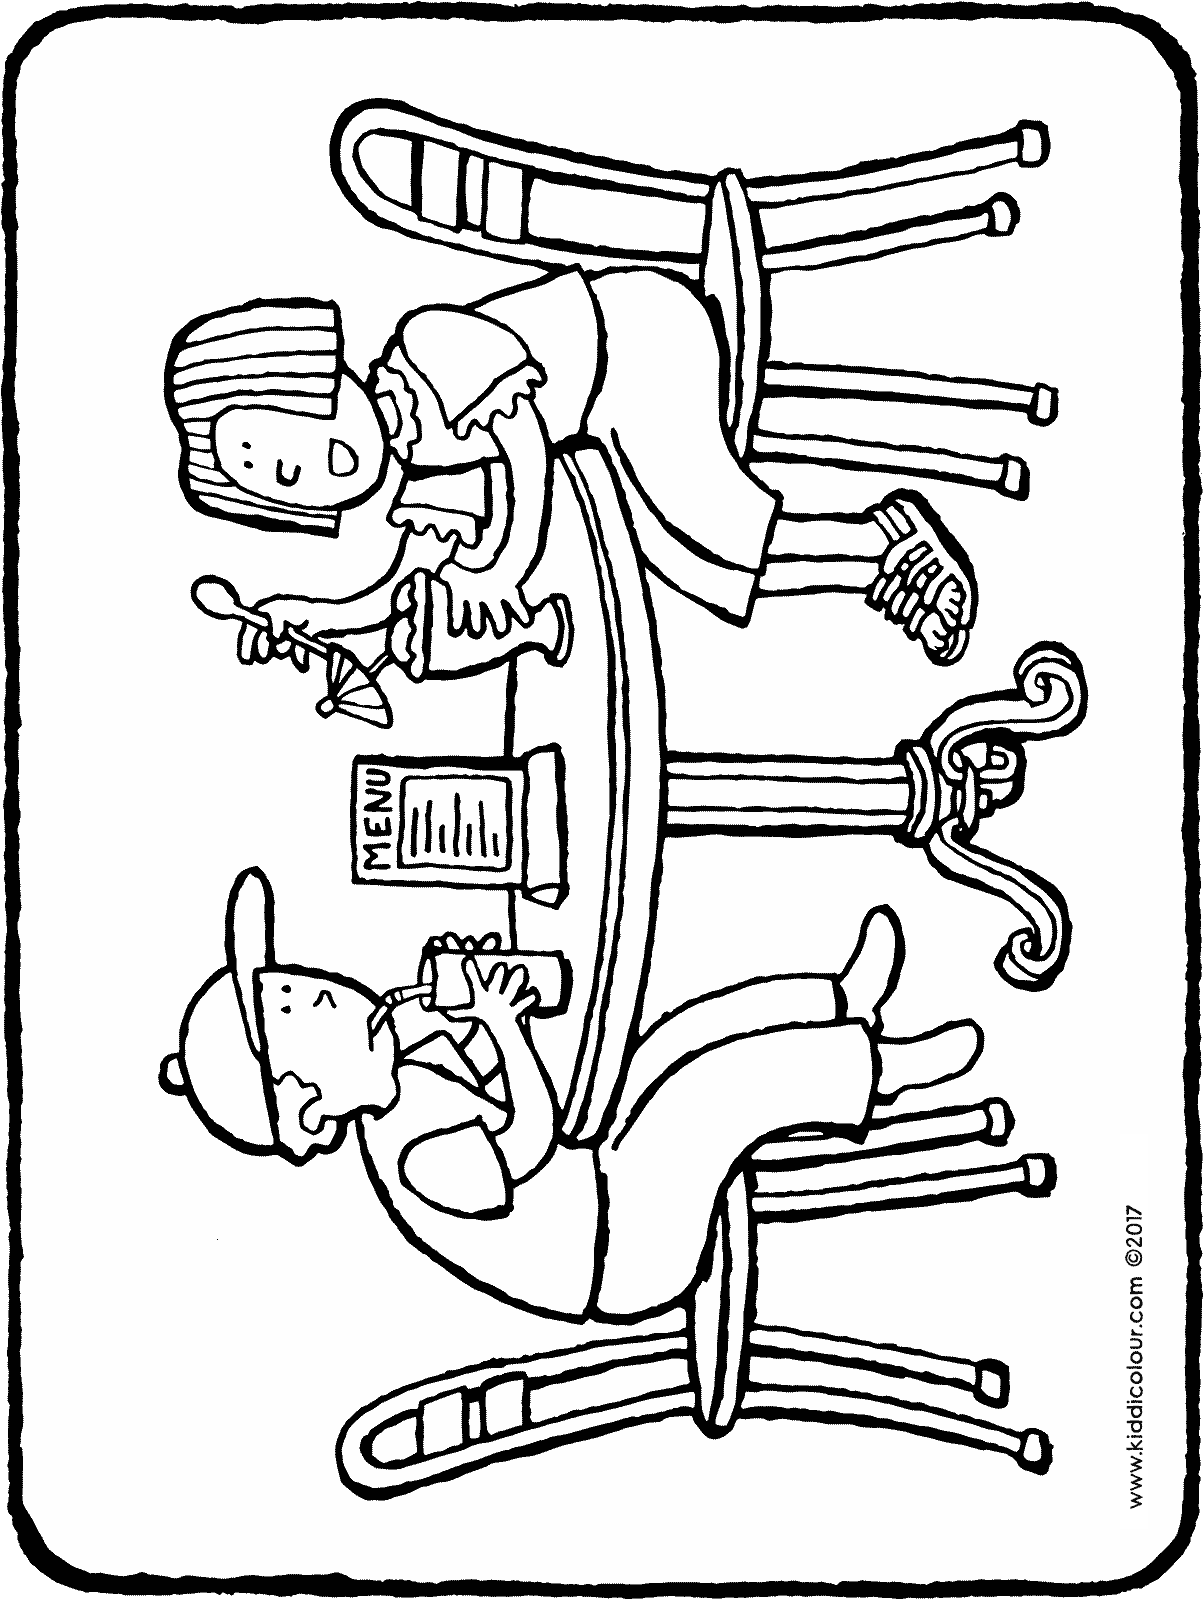 an ice-cream and a milkshake colouring page drawing picture 01H